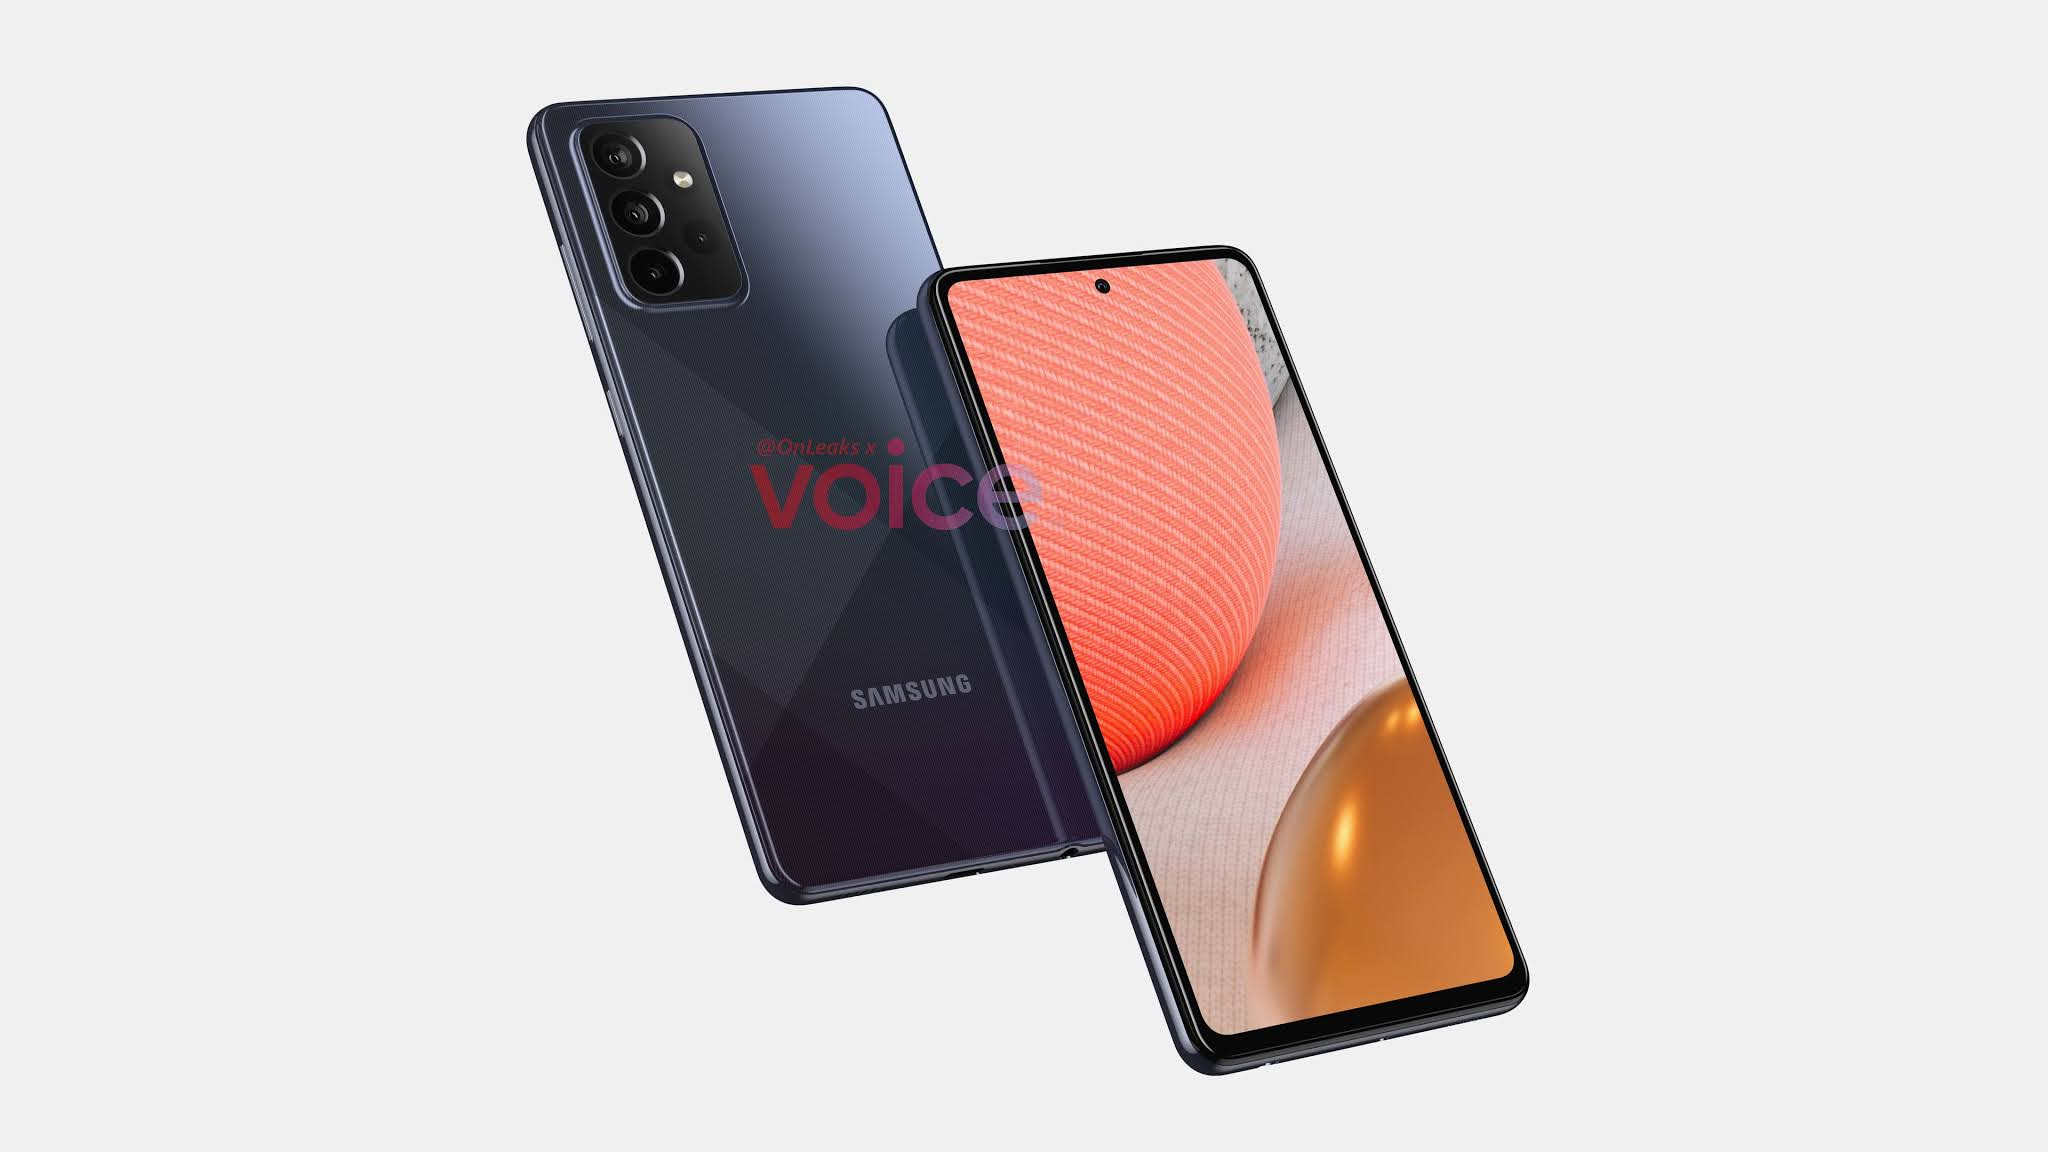 Samsung Galaxy A72 first official renders released the complete design